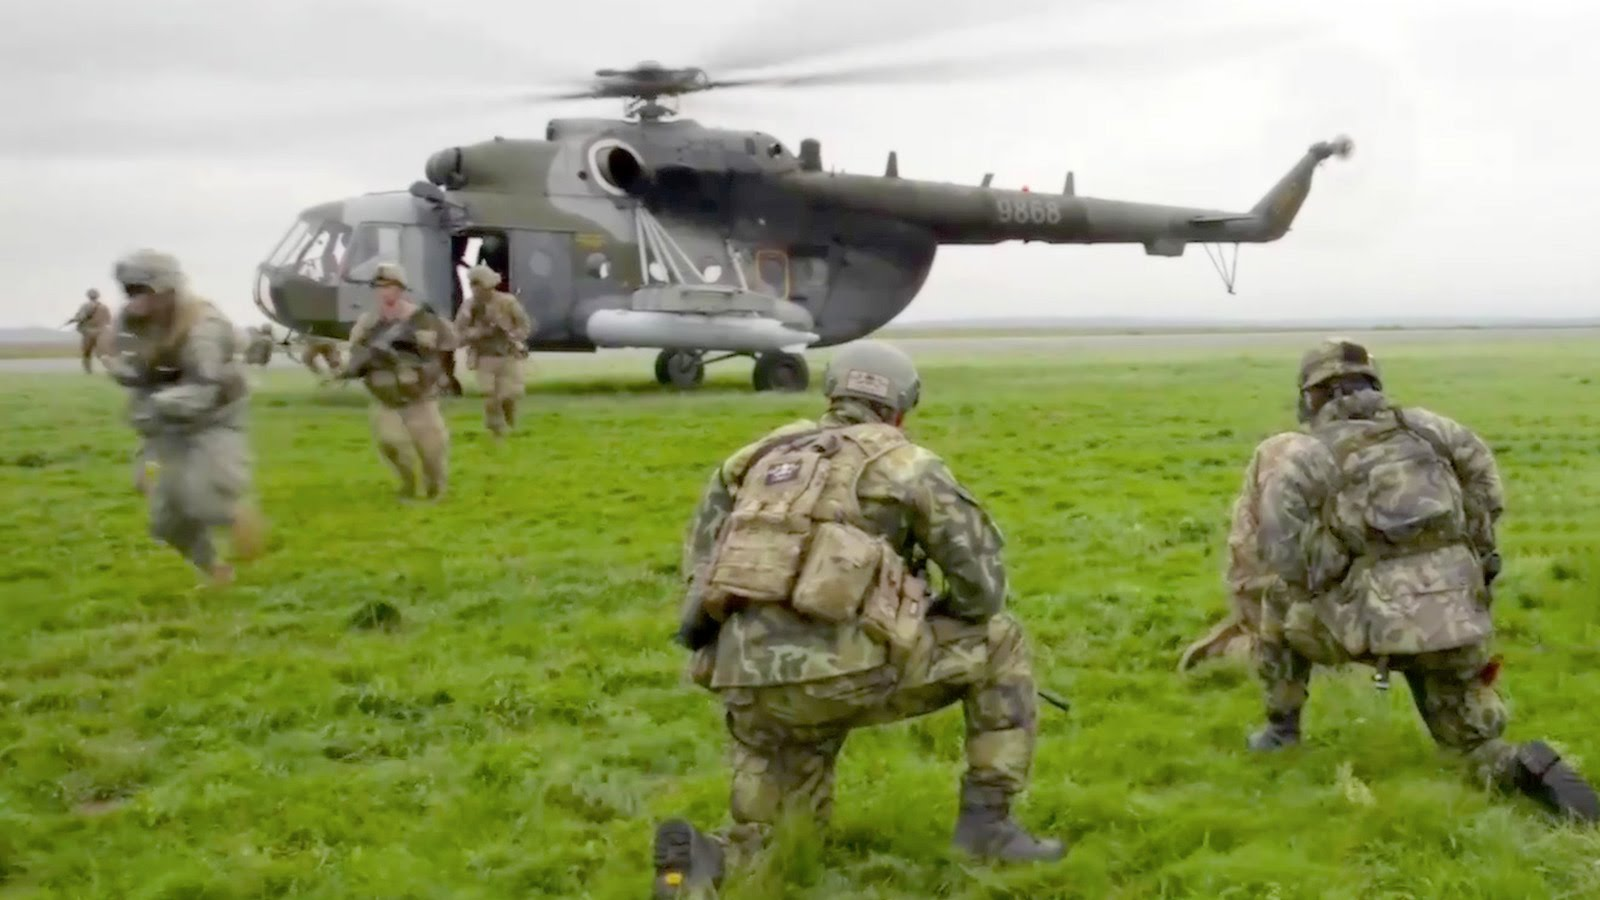 U.S. Army & Czech Army Paratroopers in Air Assault Operation